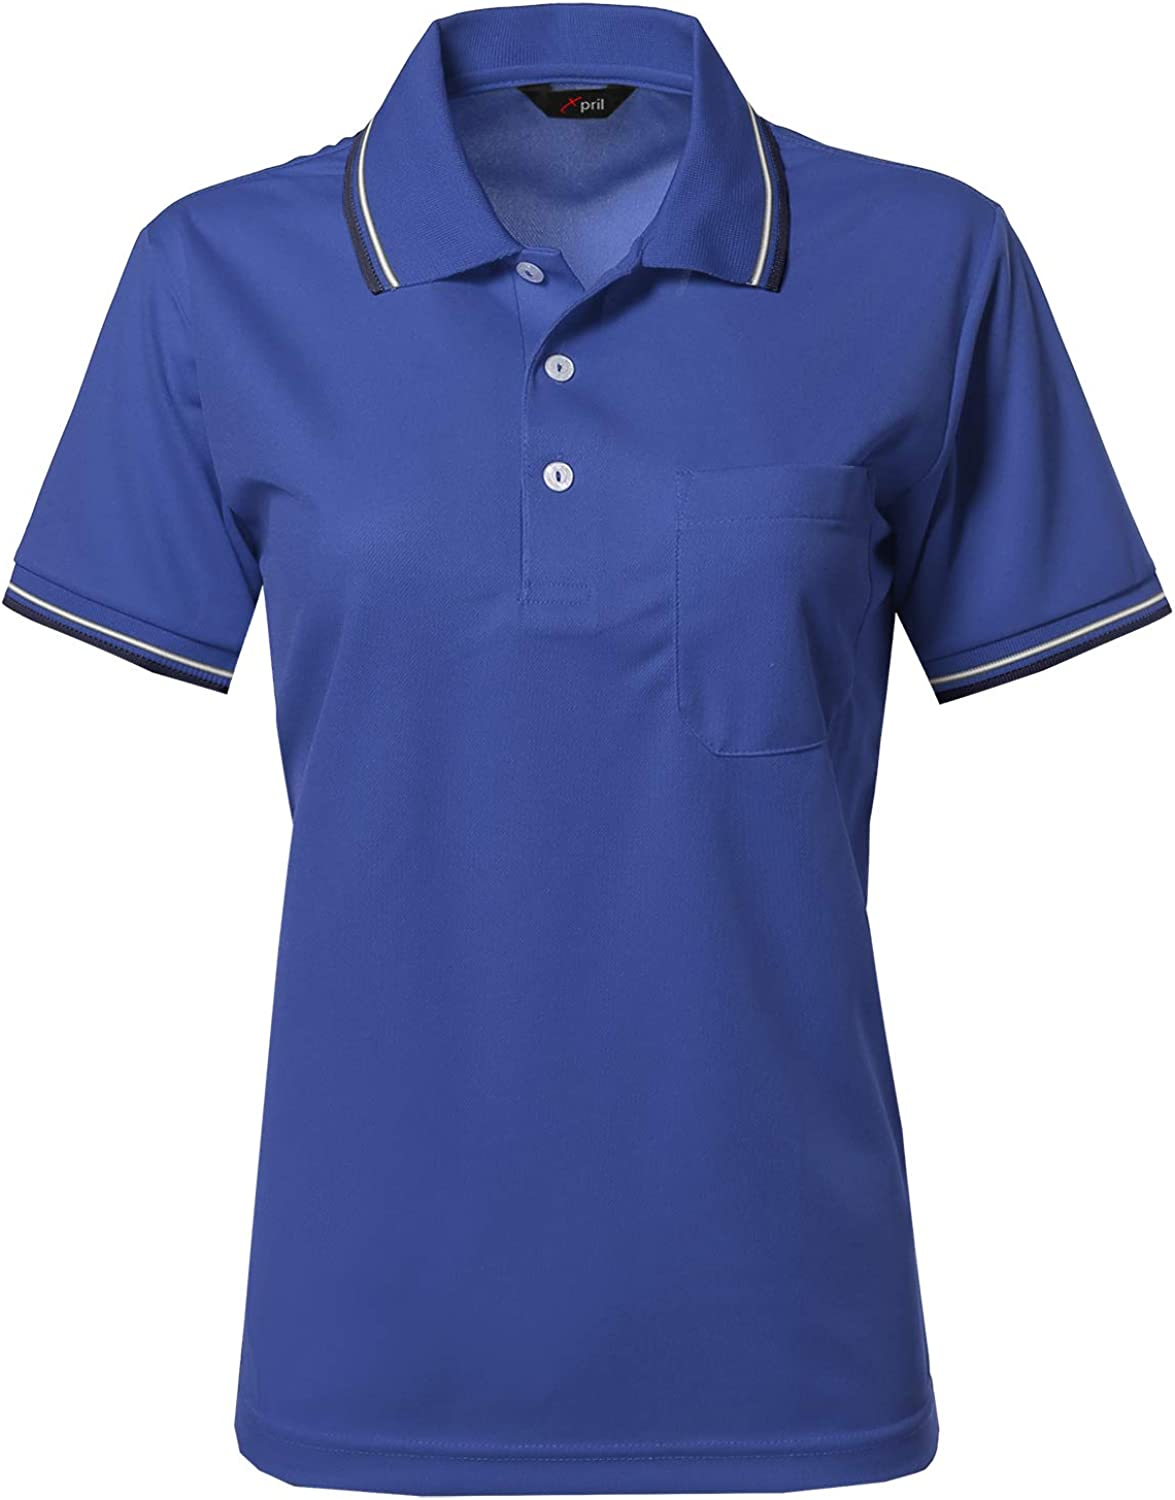 Women's Solid Cool Dri-Fit Active Short Sleeve Collar Polo T-Shirt Tee